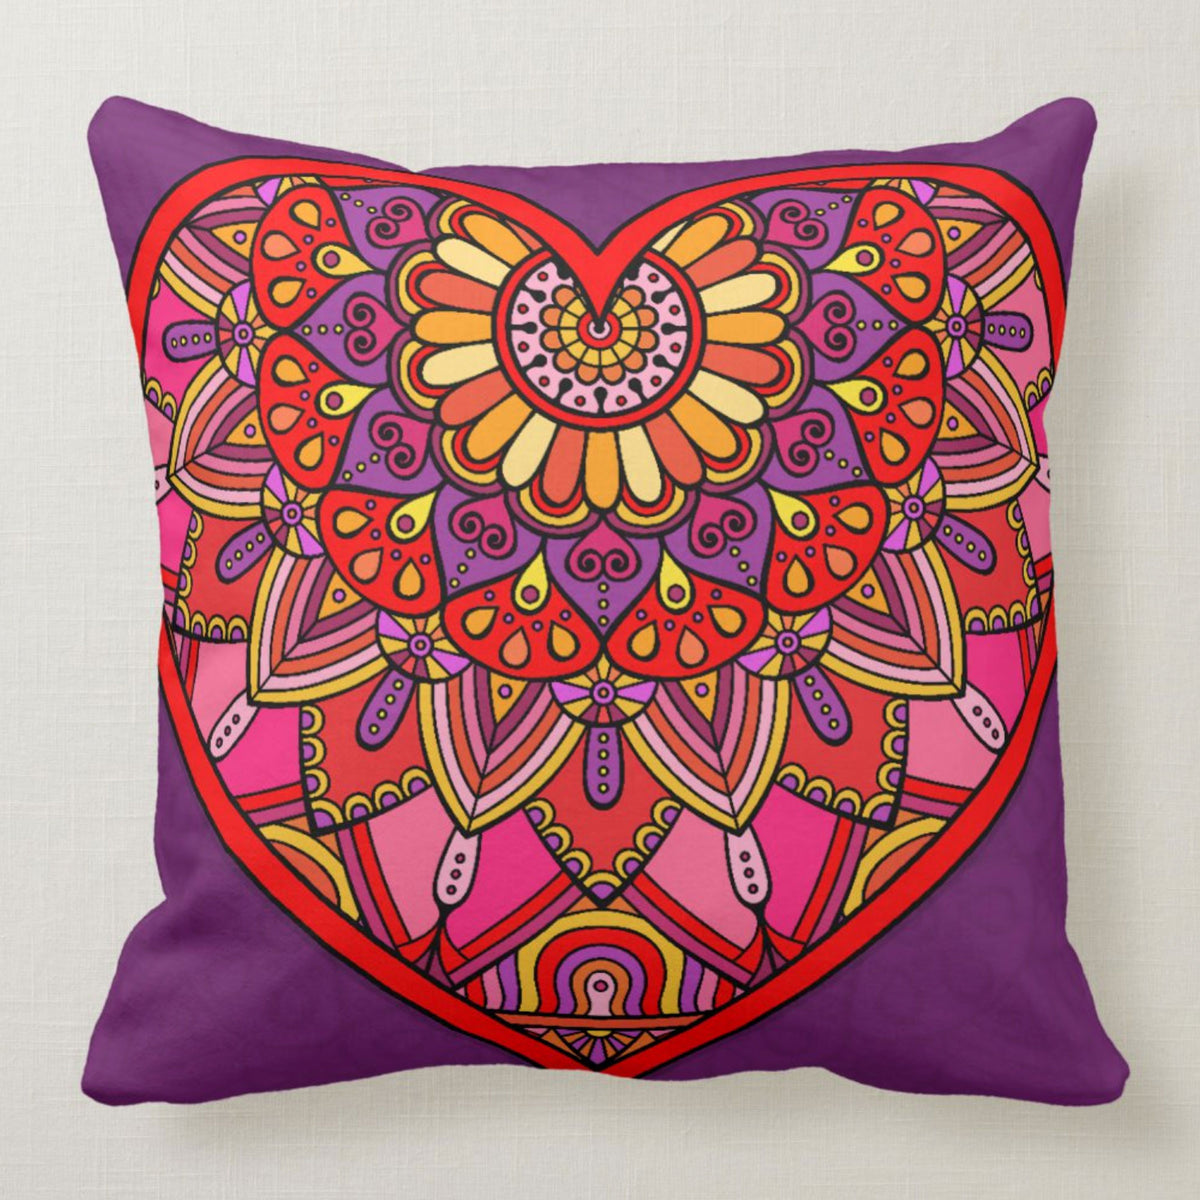 Bring some color to your room with this new Colorful Heart Throw Pillow